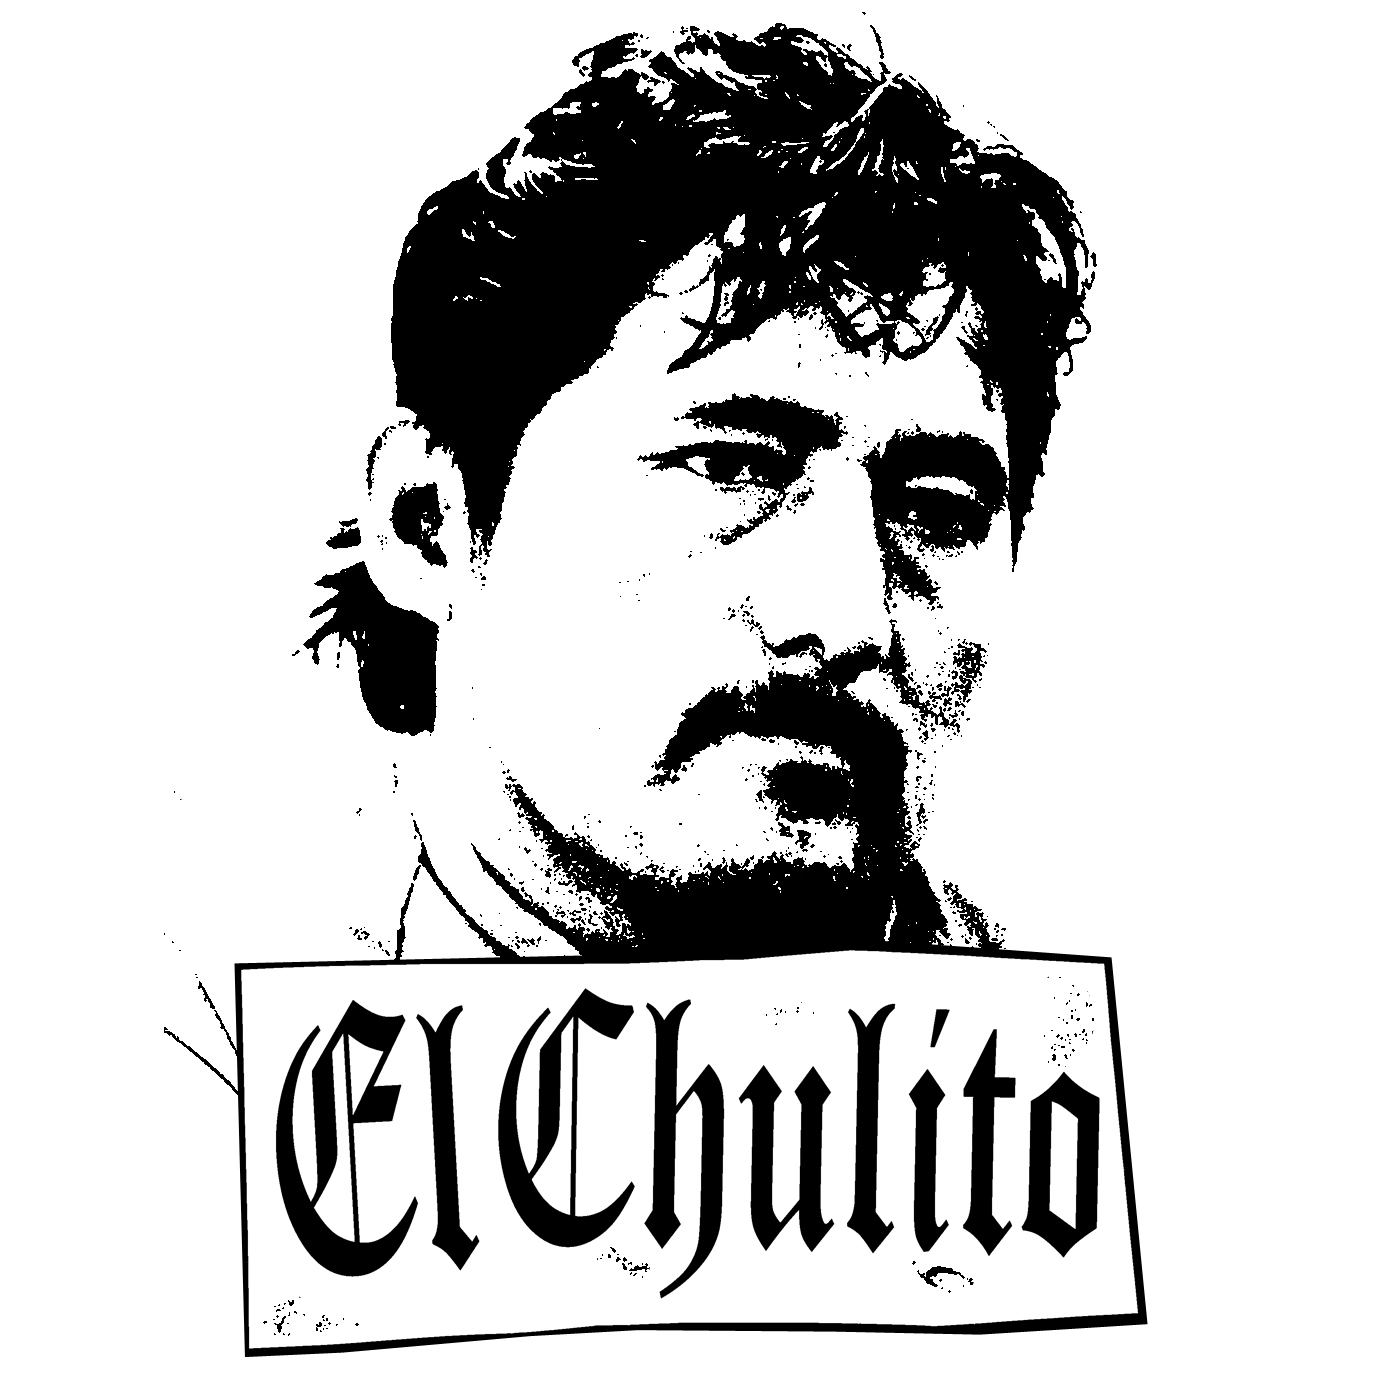 El Chulito — Music Artwork